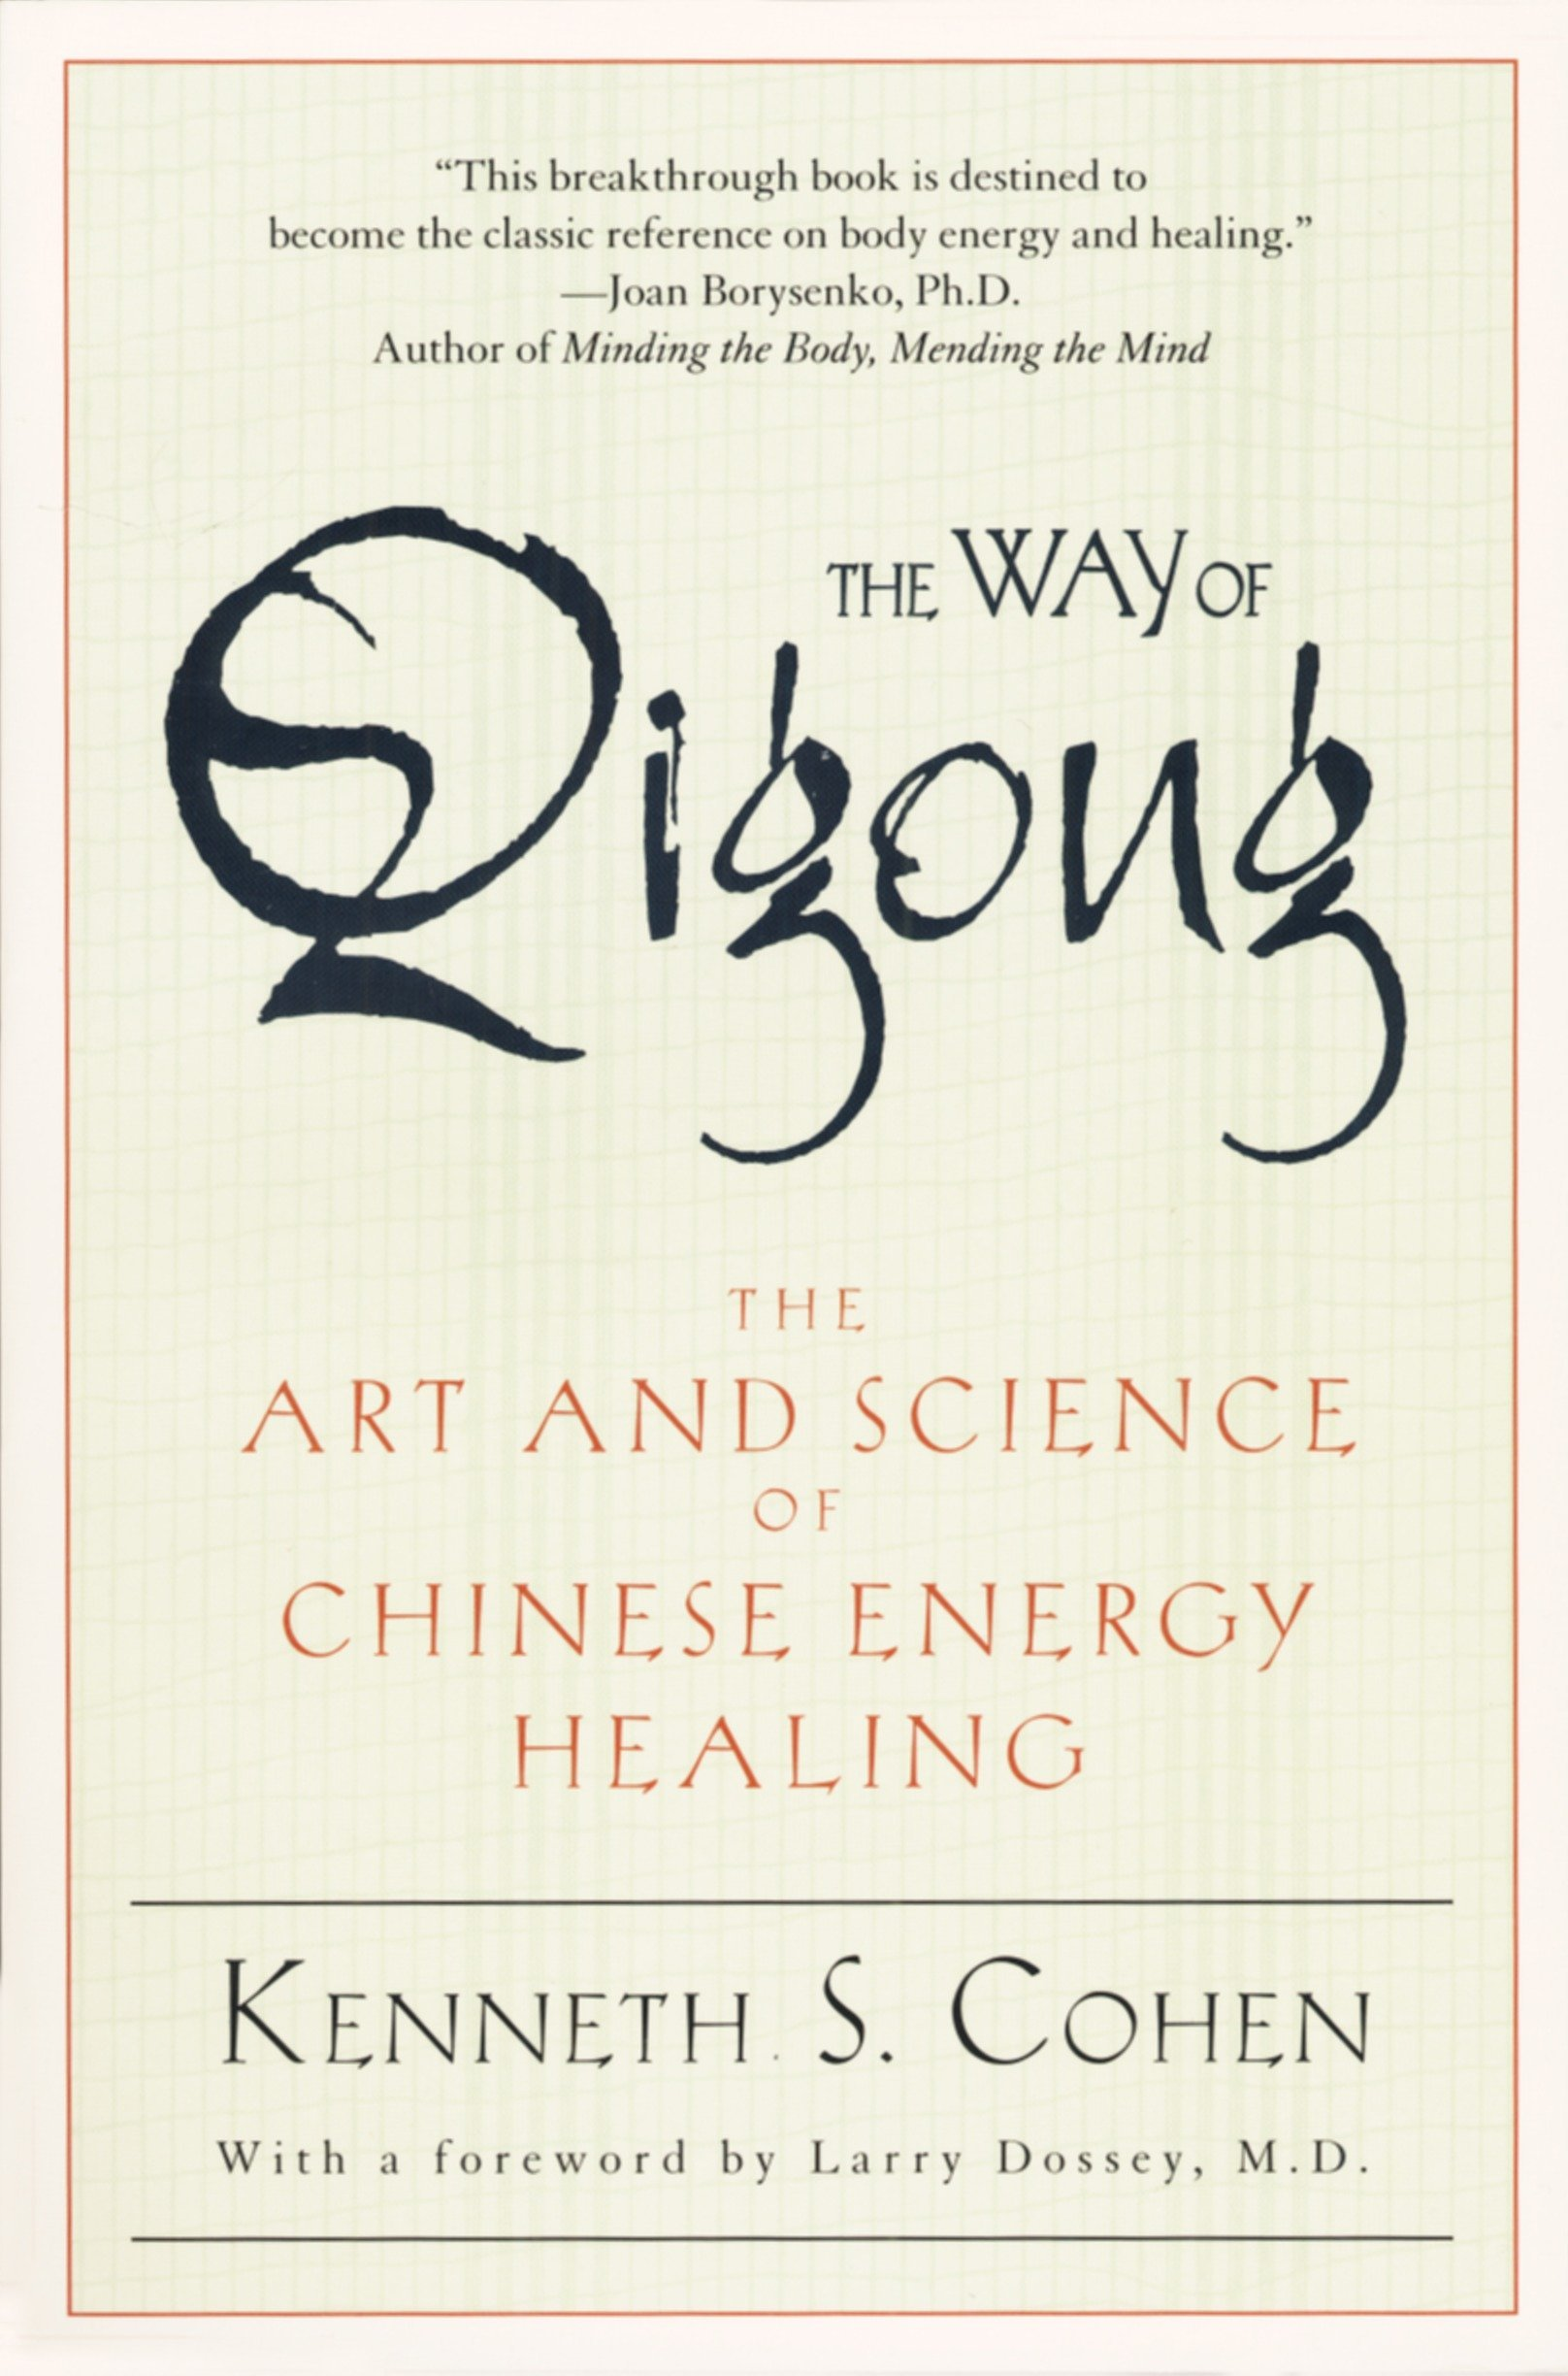 The Way of Qigong: The Art and Science of Chinese Energy Healing – Kenneth S. Cohen